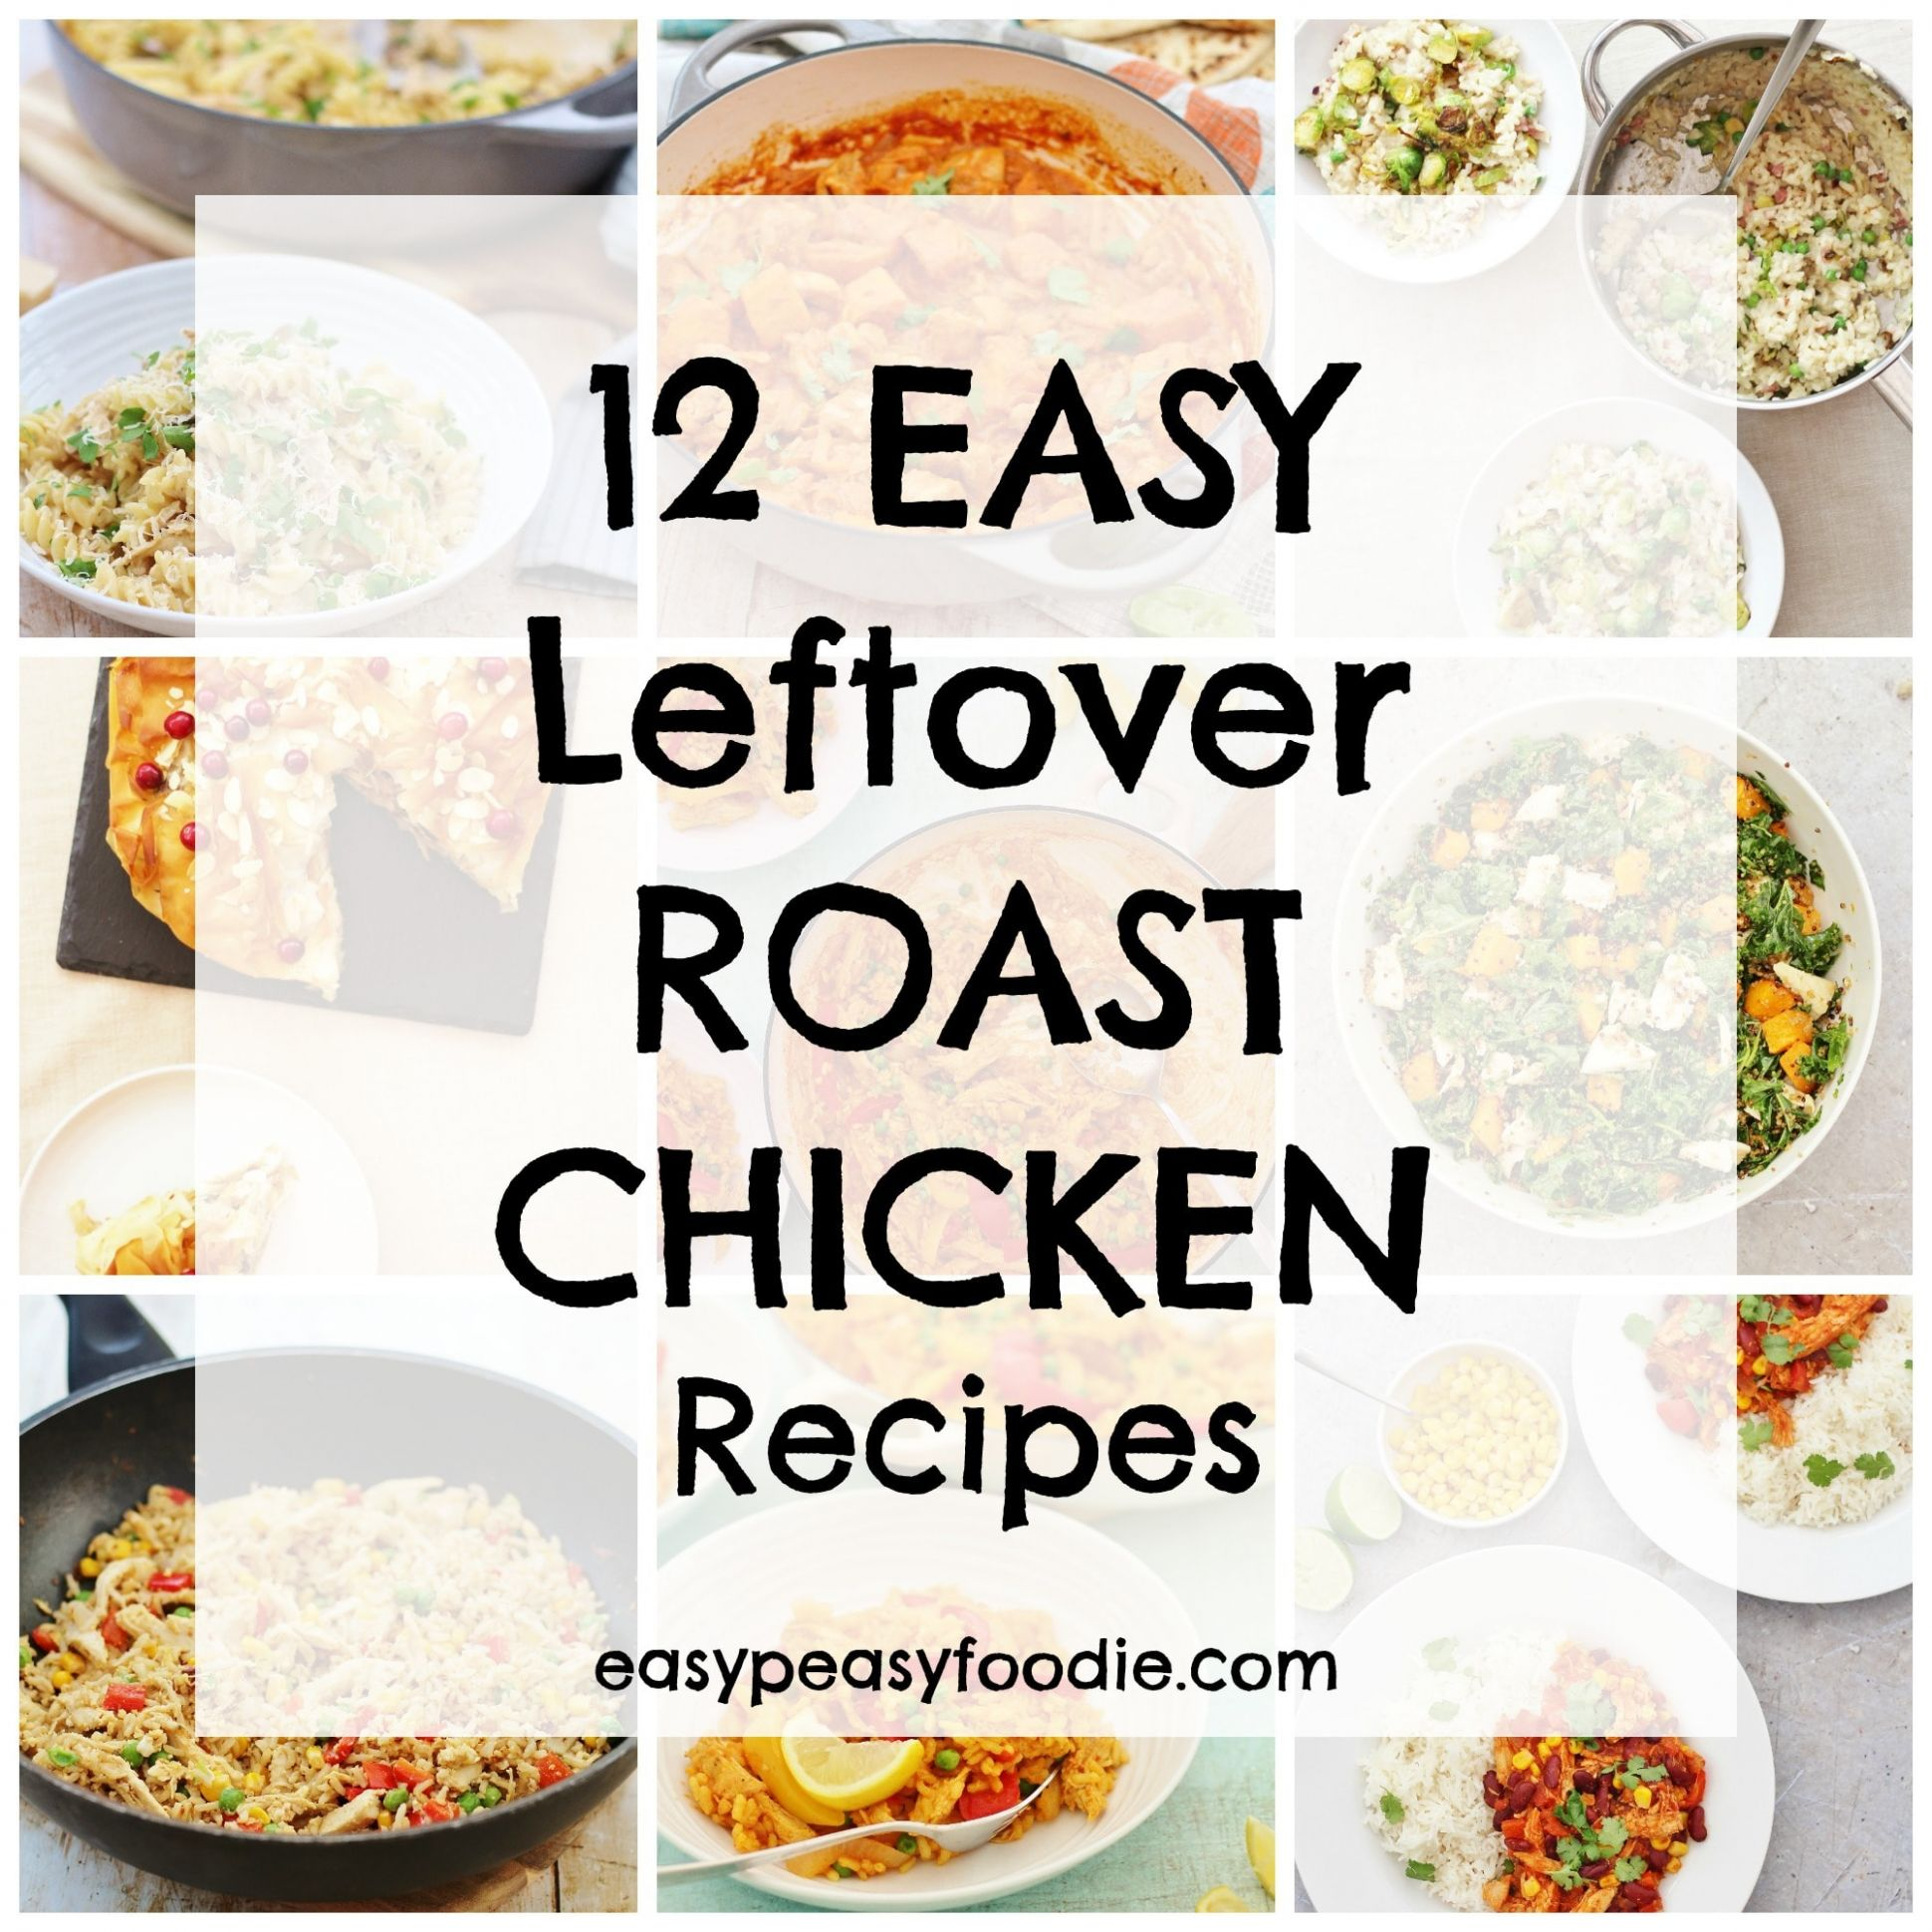 10 Easy Leftover Roast Chicken Recipes - Easy Peasy Foodie